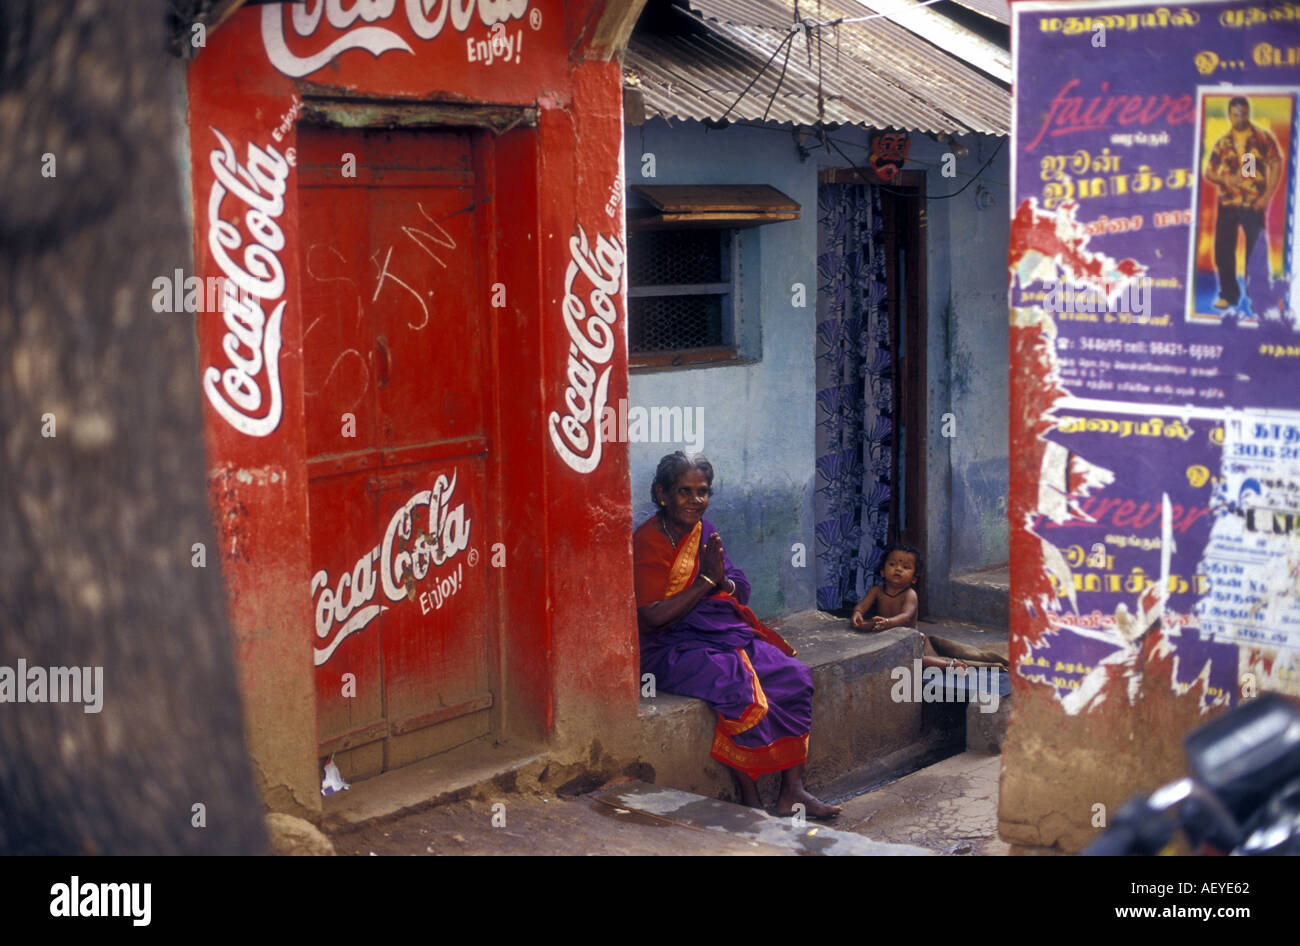 A blind woman extends greetings in Madurai Tamil Nadu India Picture by Andrew Hasson 2002 - Stock Image